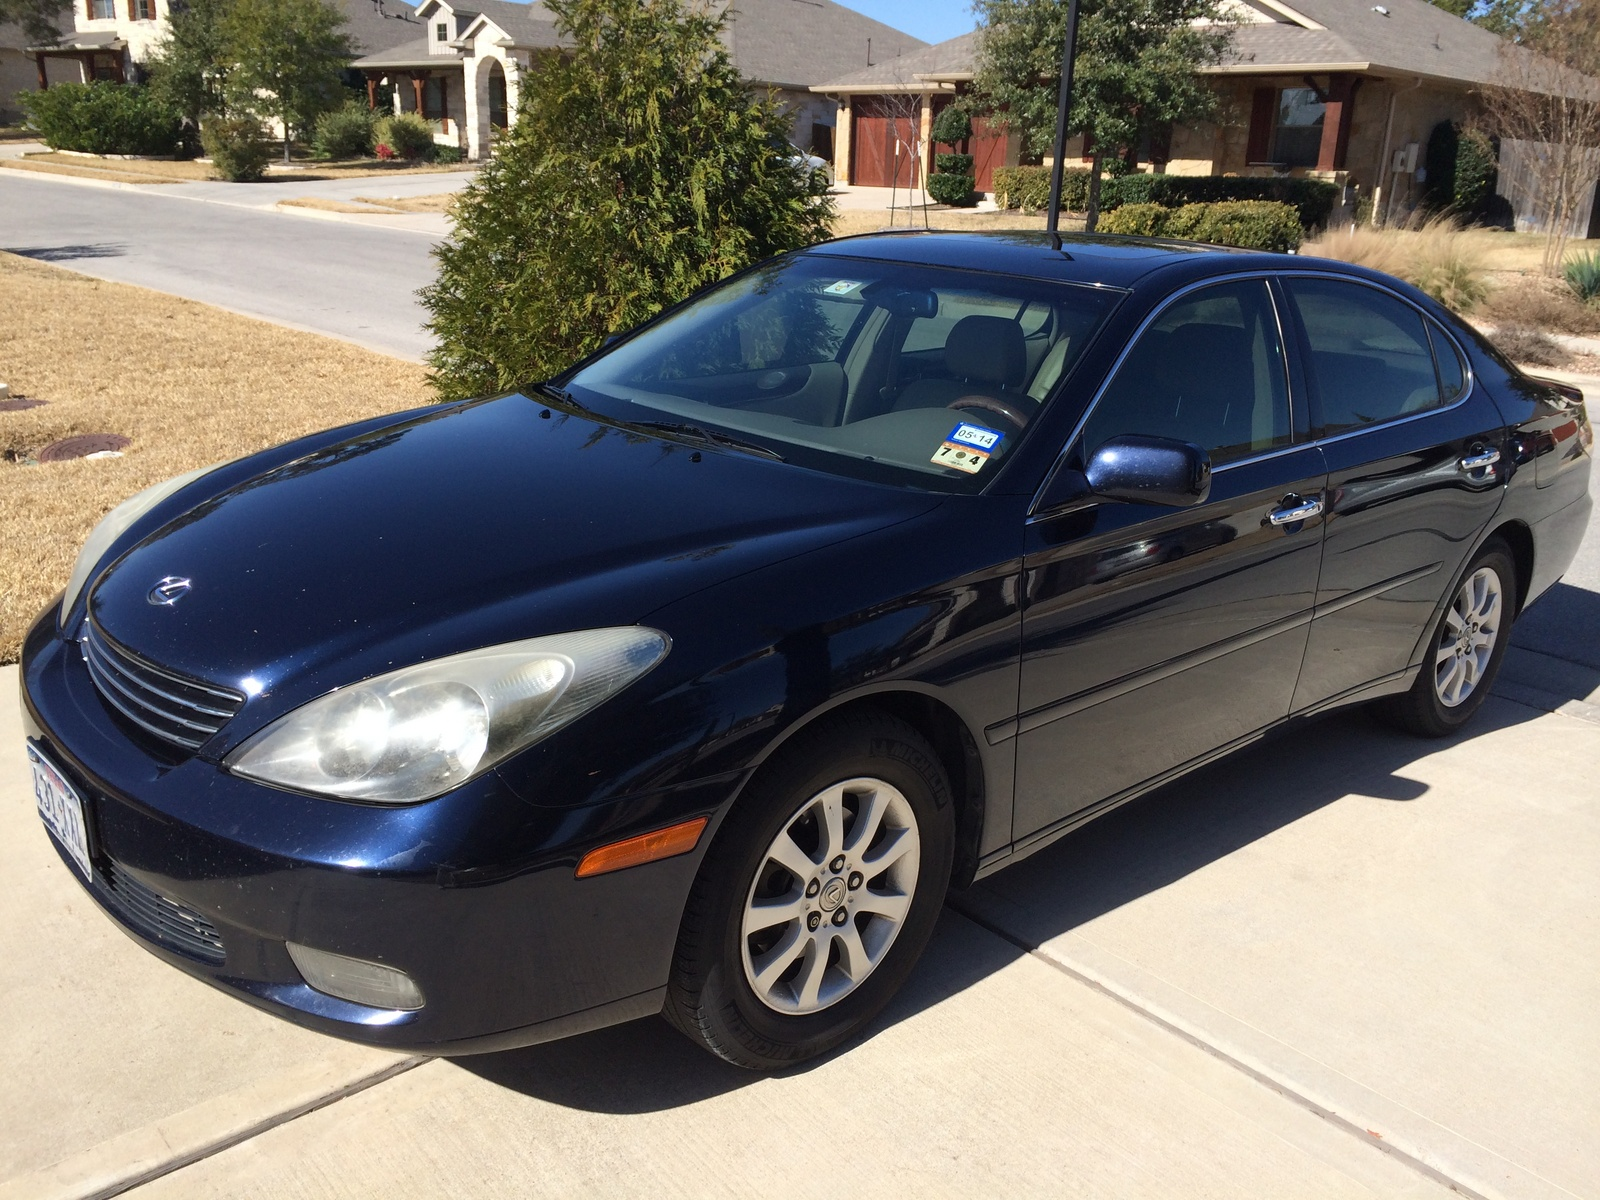 2002 lexus es 300 pictures cargurus. Black Bedroom Furniture Sets. Home Design Ideas